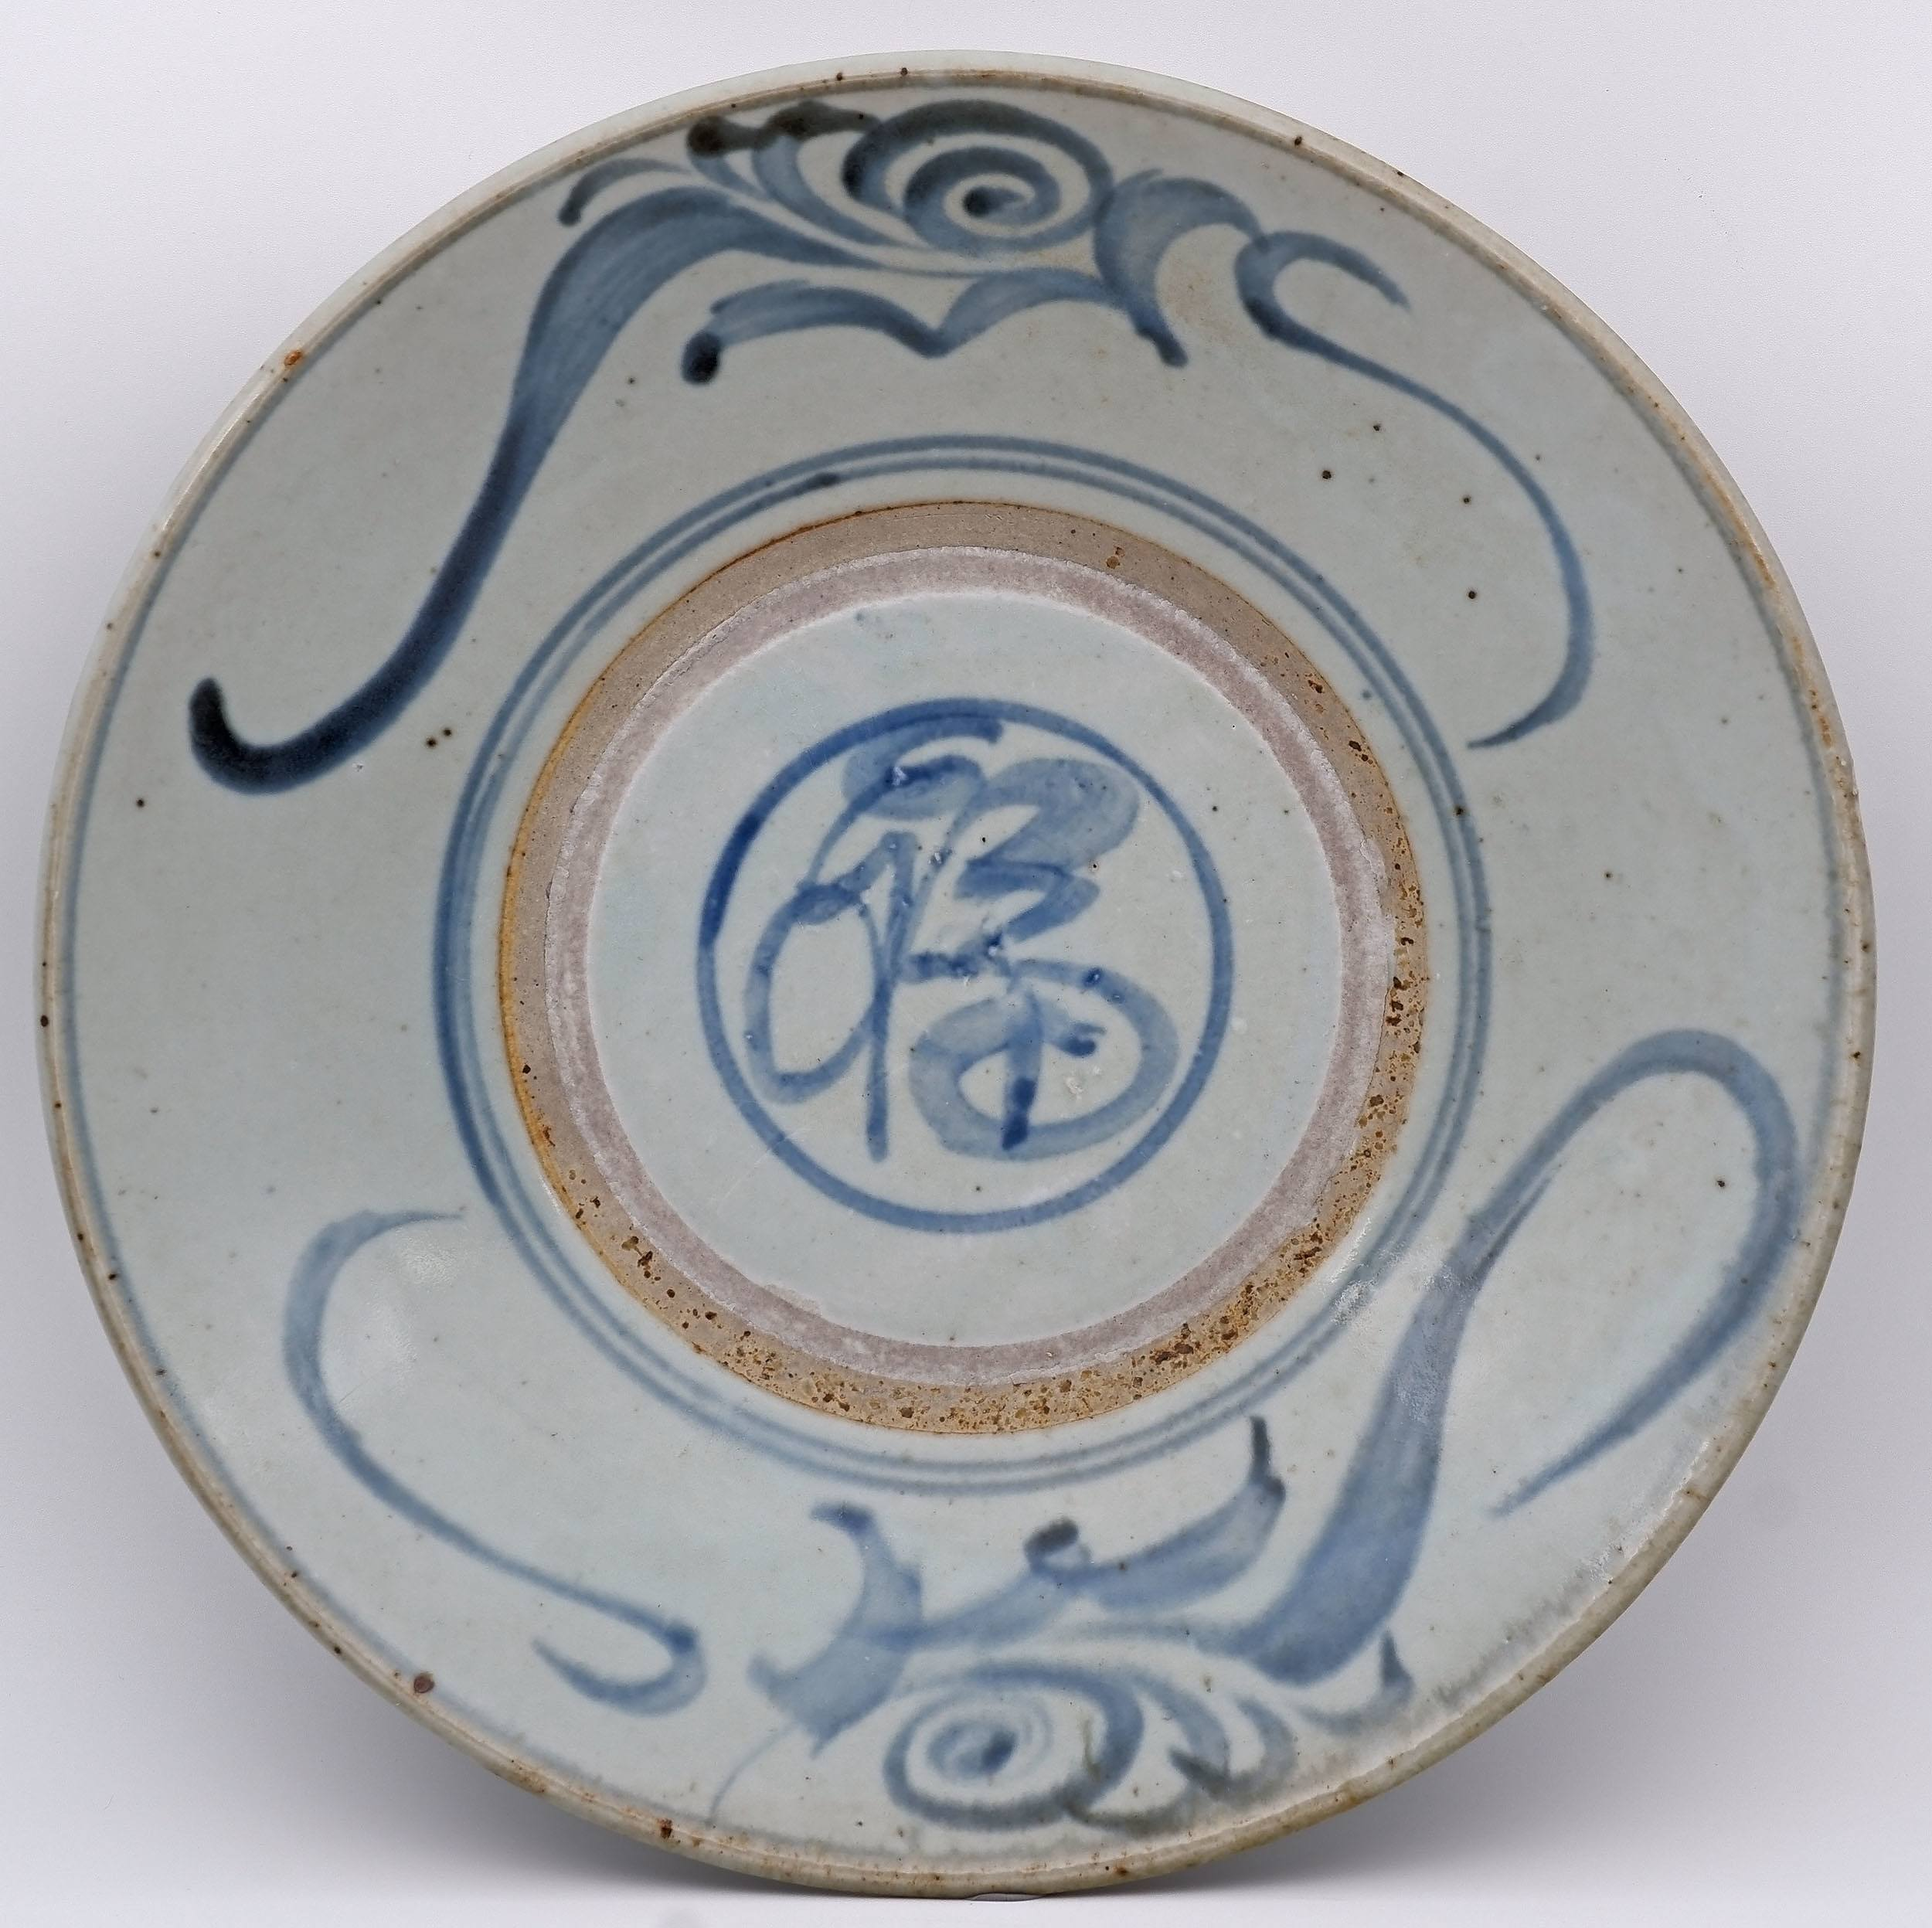 'Large Chinese Kitchen Ming Dish with Happiness Character, 16-17th Century'